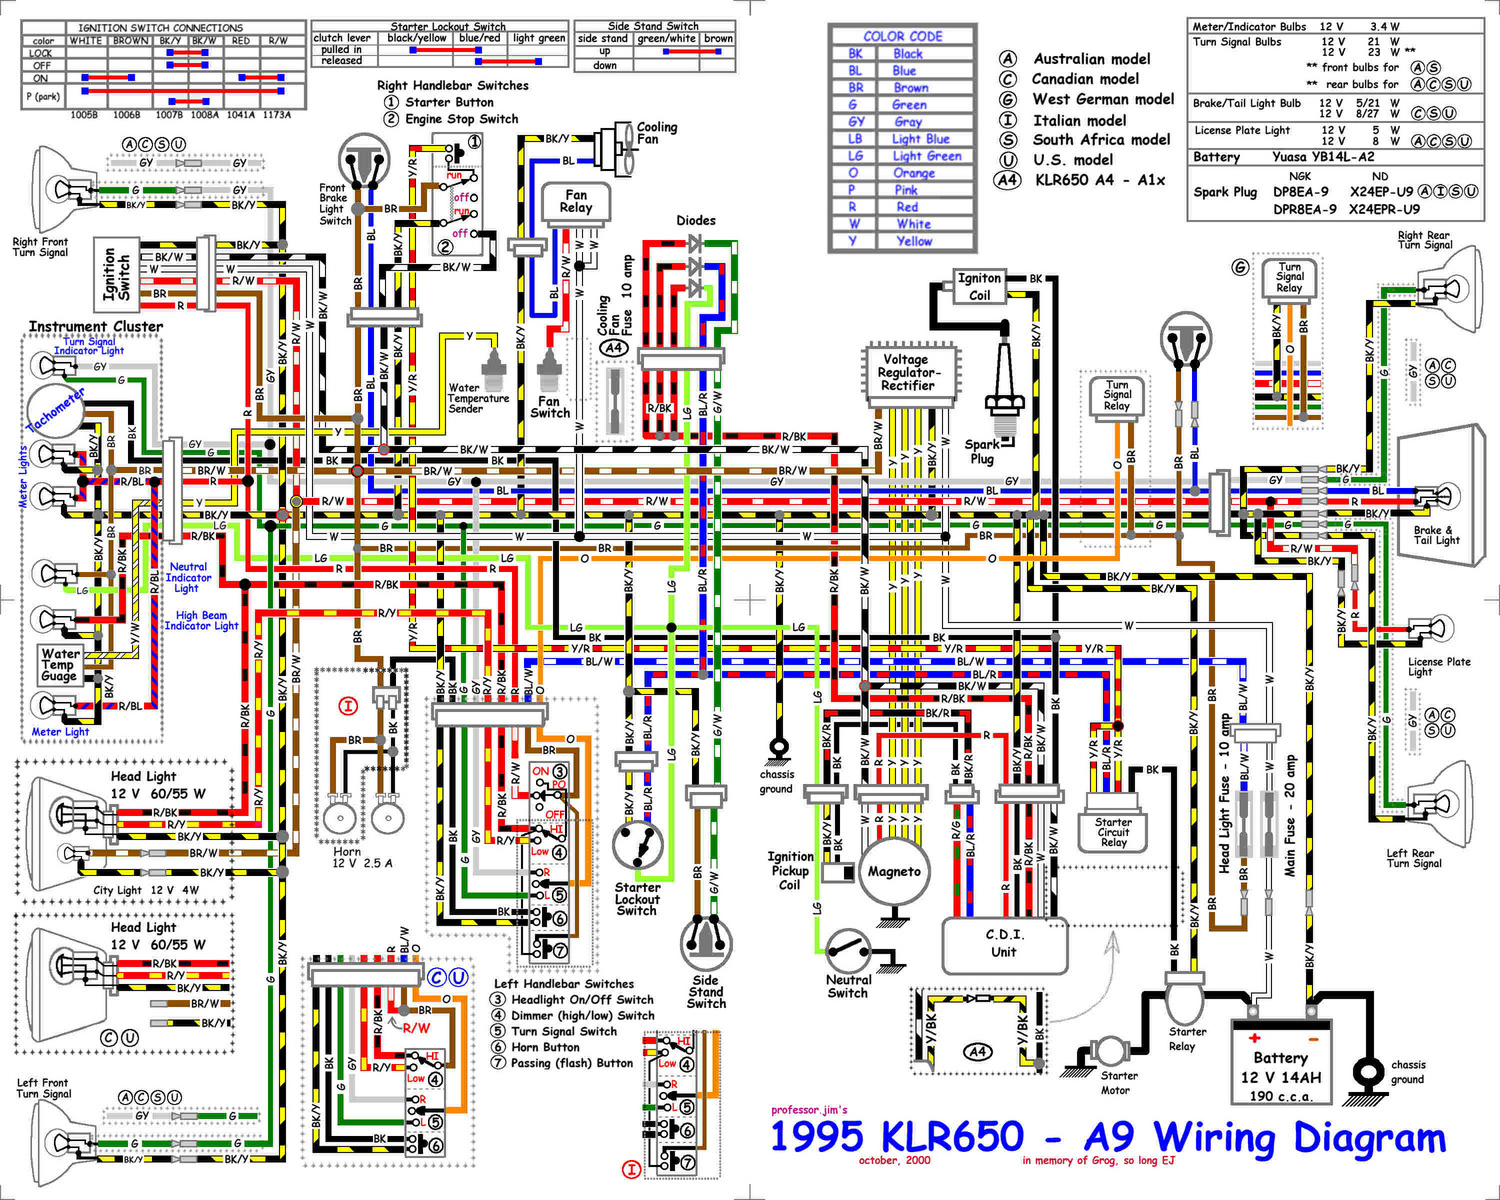 pt cruiser wiring diagram abs with Discussion T27131 Ds547488 on 82j7u Grand Caravan Sxt 2005 Grand Caravan W 3 8l Engine Just additionally Fa43533a9723b254b16bd149cf489ef1 likewise 210276458 Mercedes Ml320 Ml350 Ml500 Ml550 2006 2010 Parts additionally Discussion T27131 ds547488 also Dodge Dakota Pcm Location.